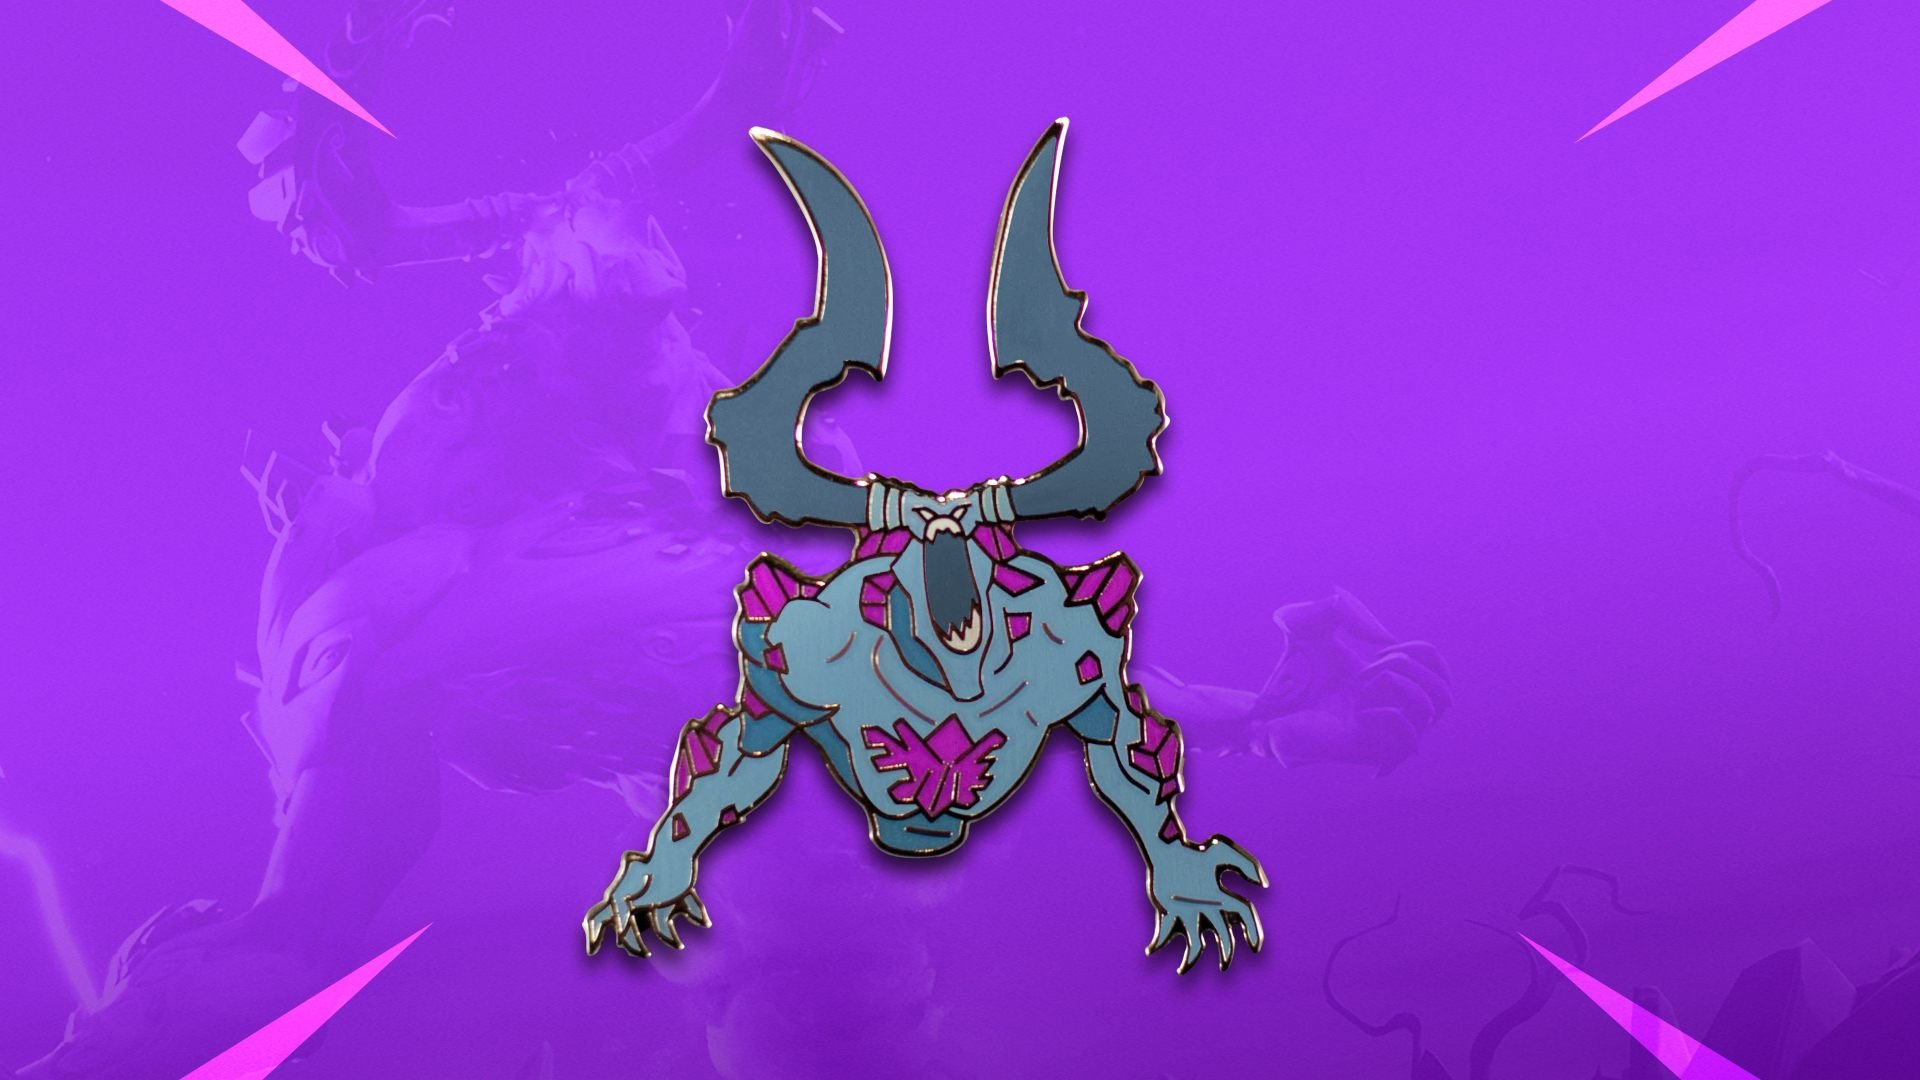 fortnite save the world narrative storm king boss fight pin enamel free